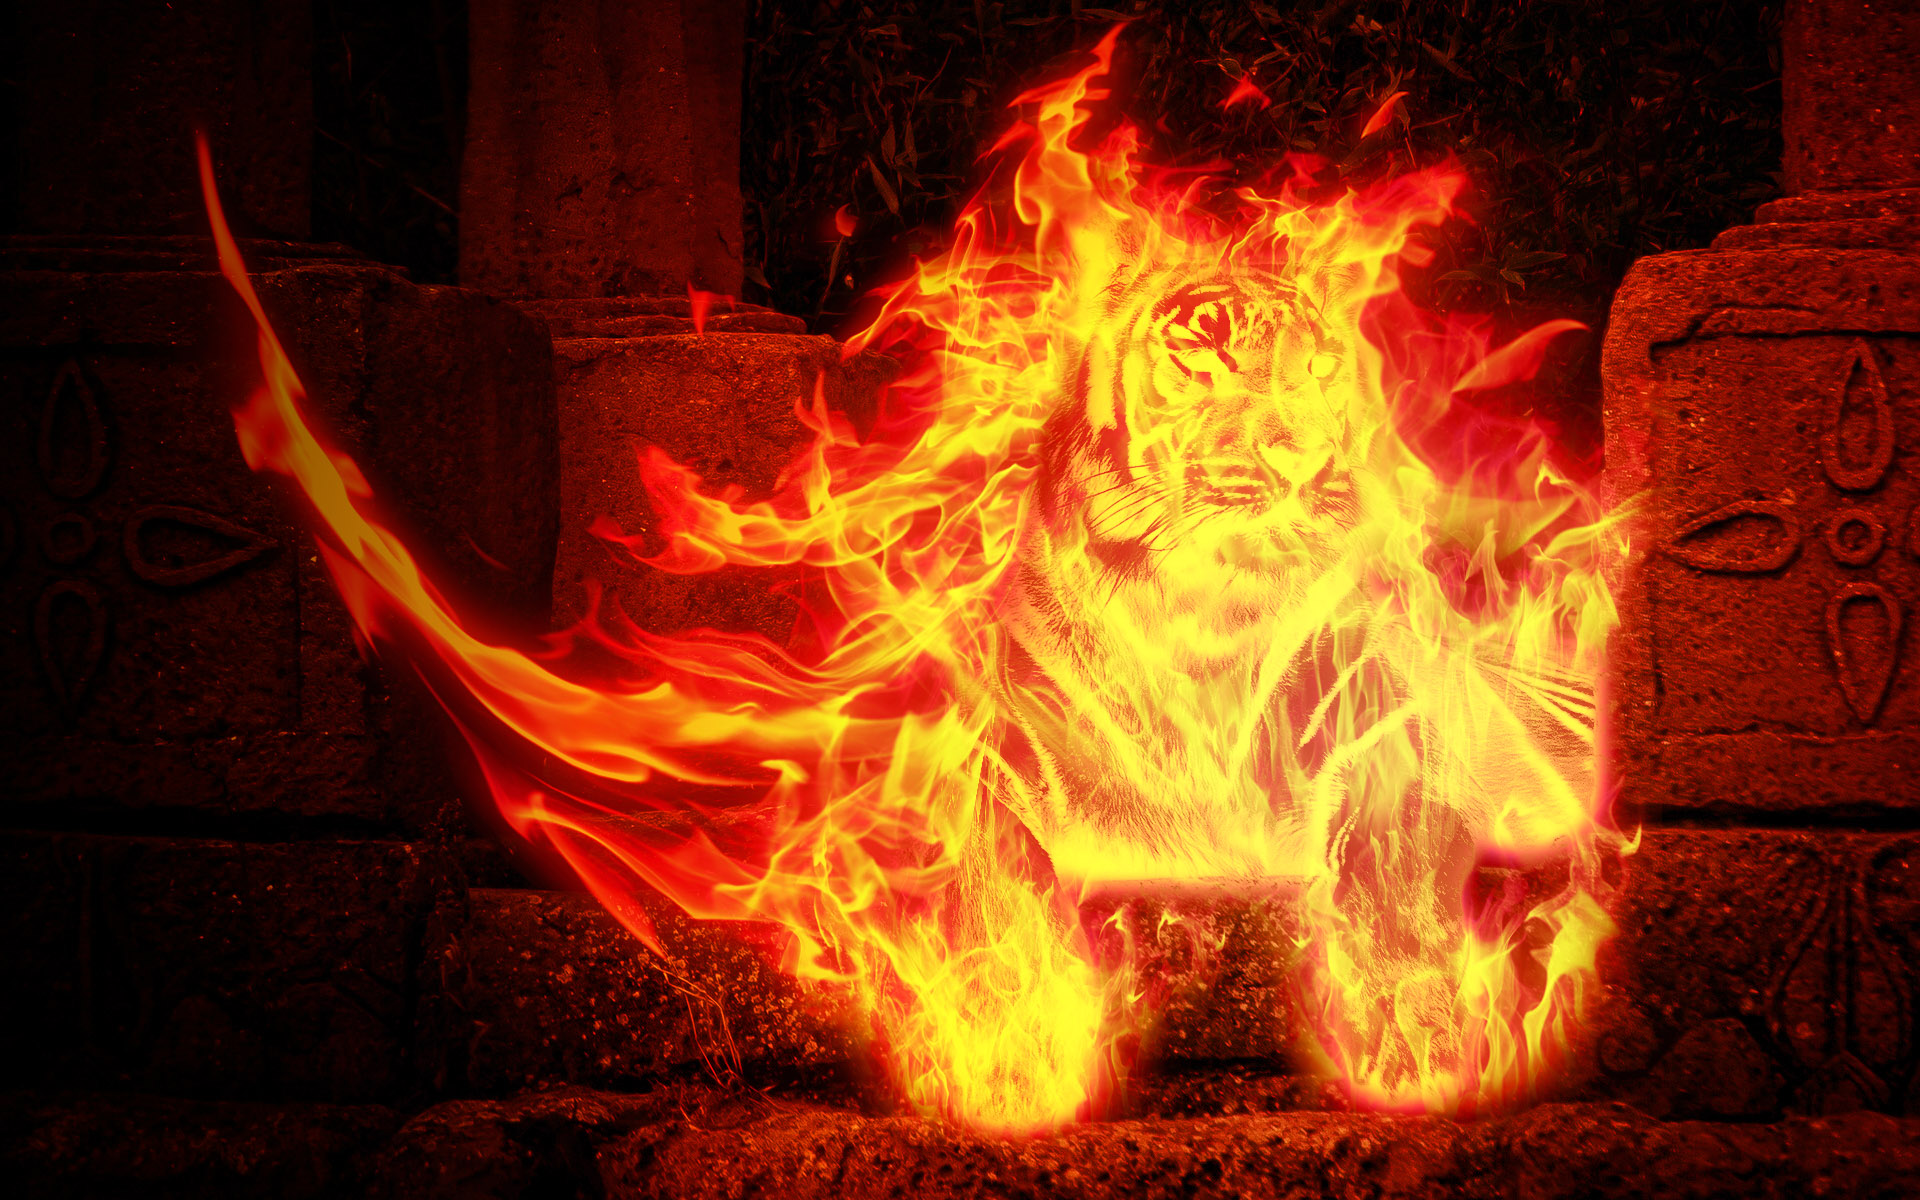 Satanic Iphone Wallpaper Burning Tiger Full Hd Wallpaper And Hintergrund